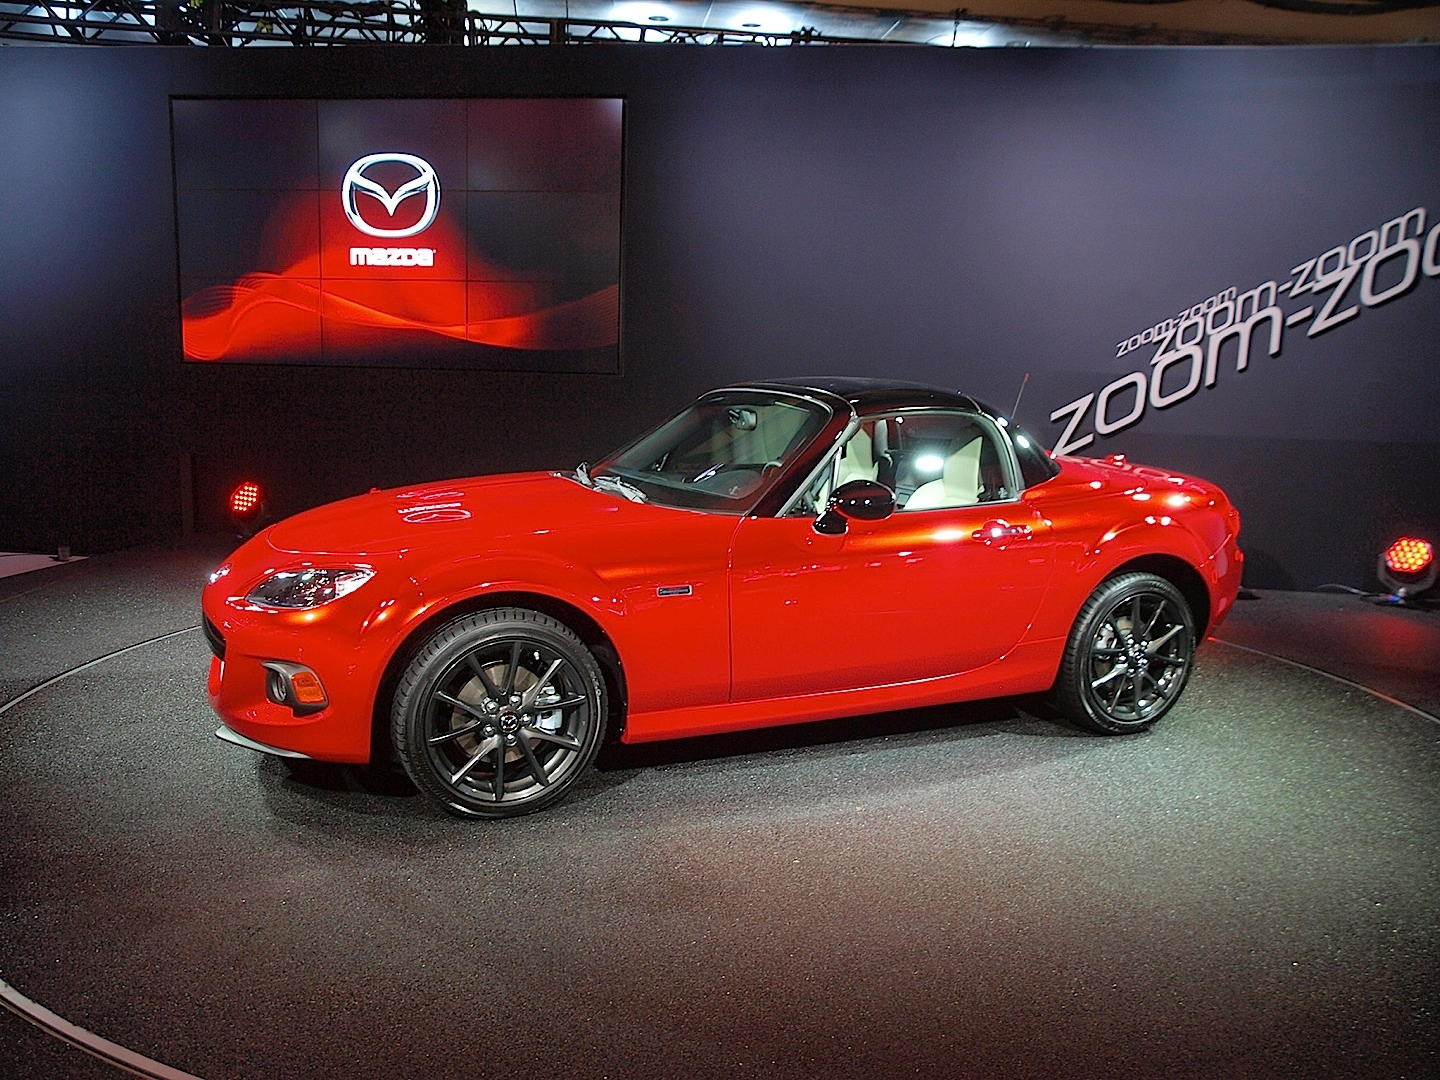 https://s1.cdn.autoevolution.com/images/news/2015-mazda-mx-5-pricing-announced-including-25th-anniversary-80855_1.jpg